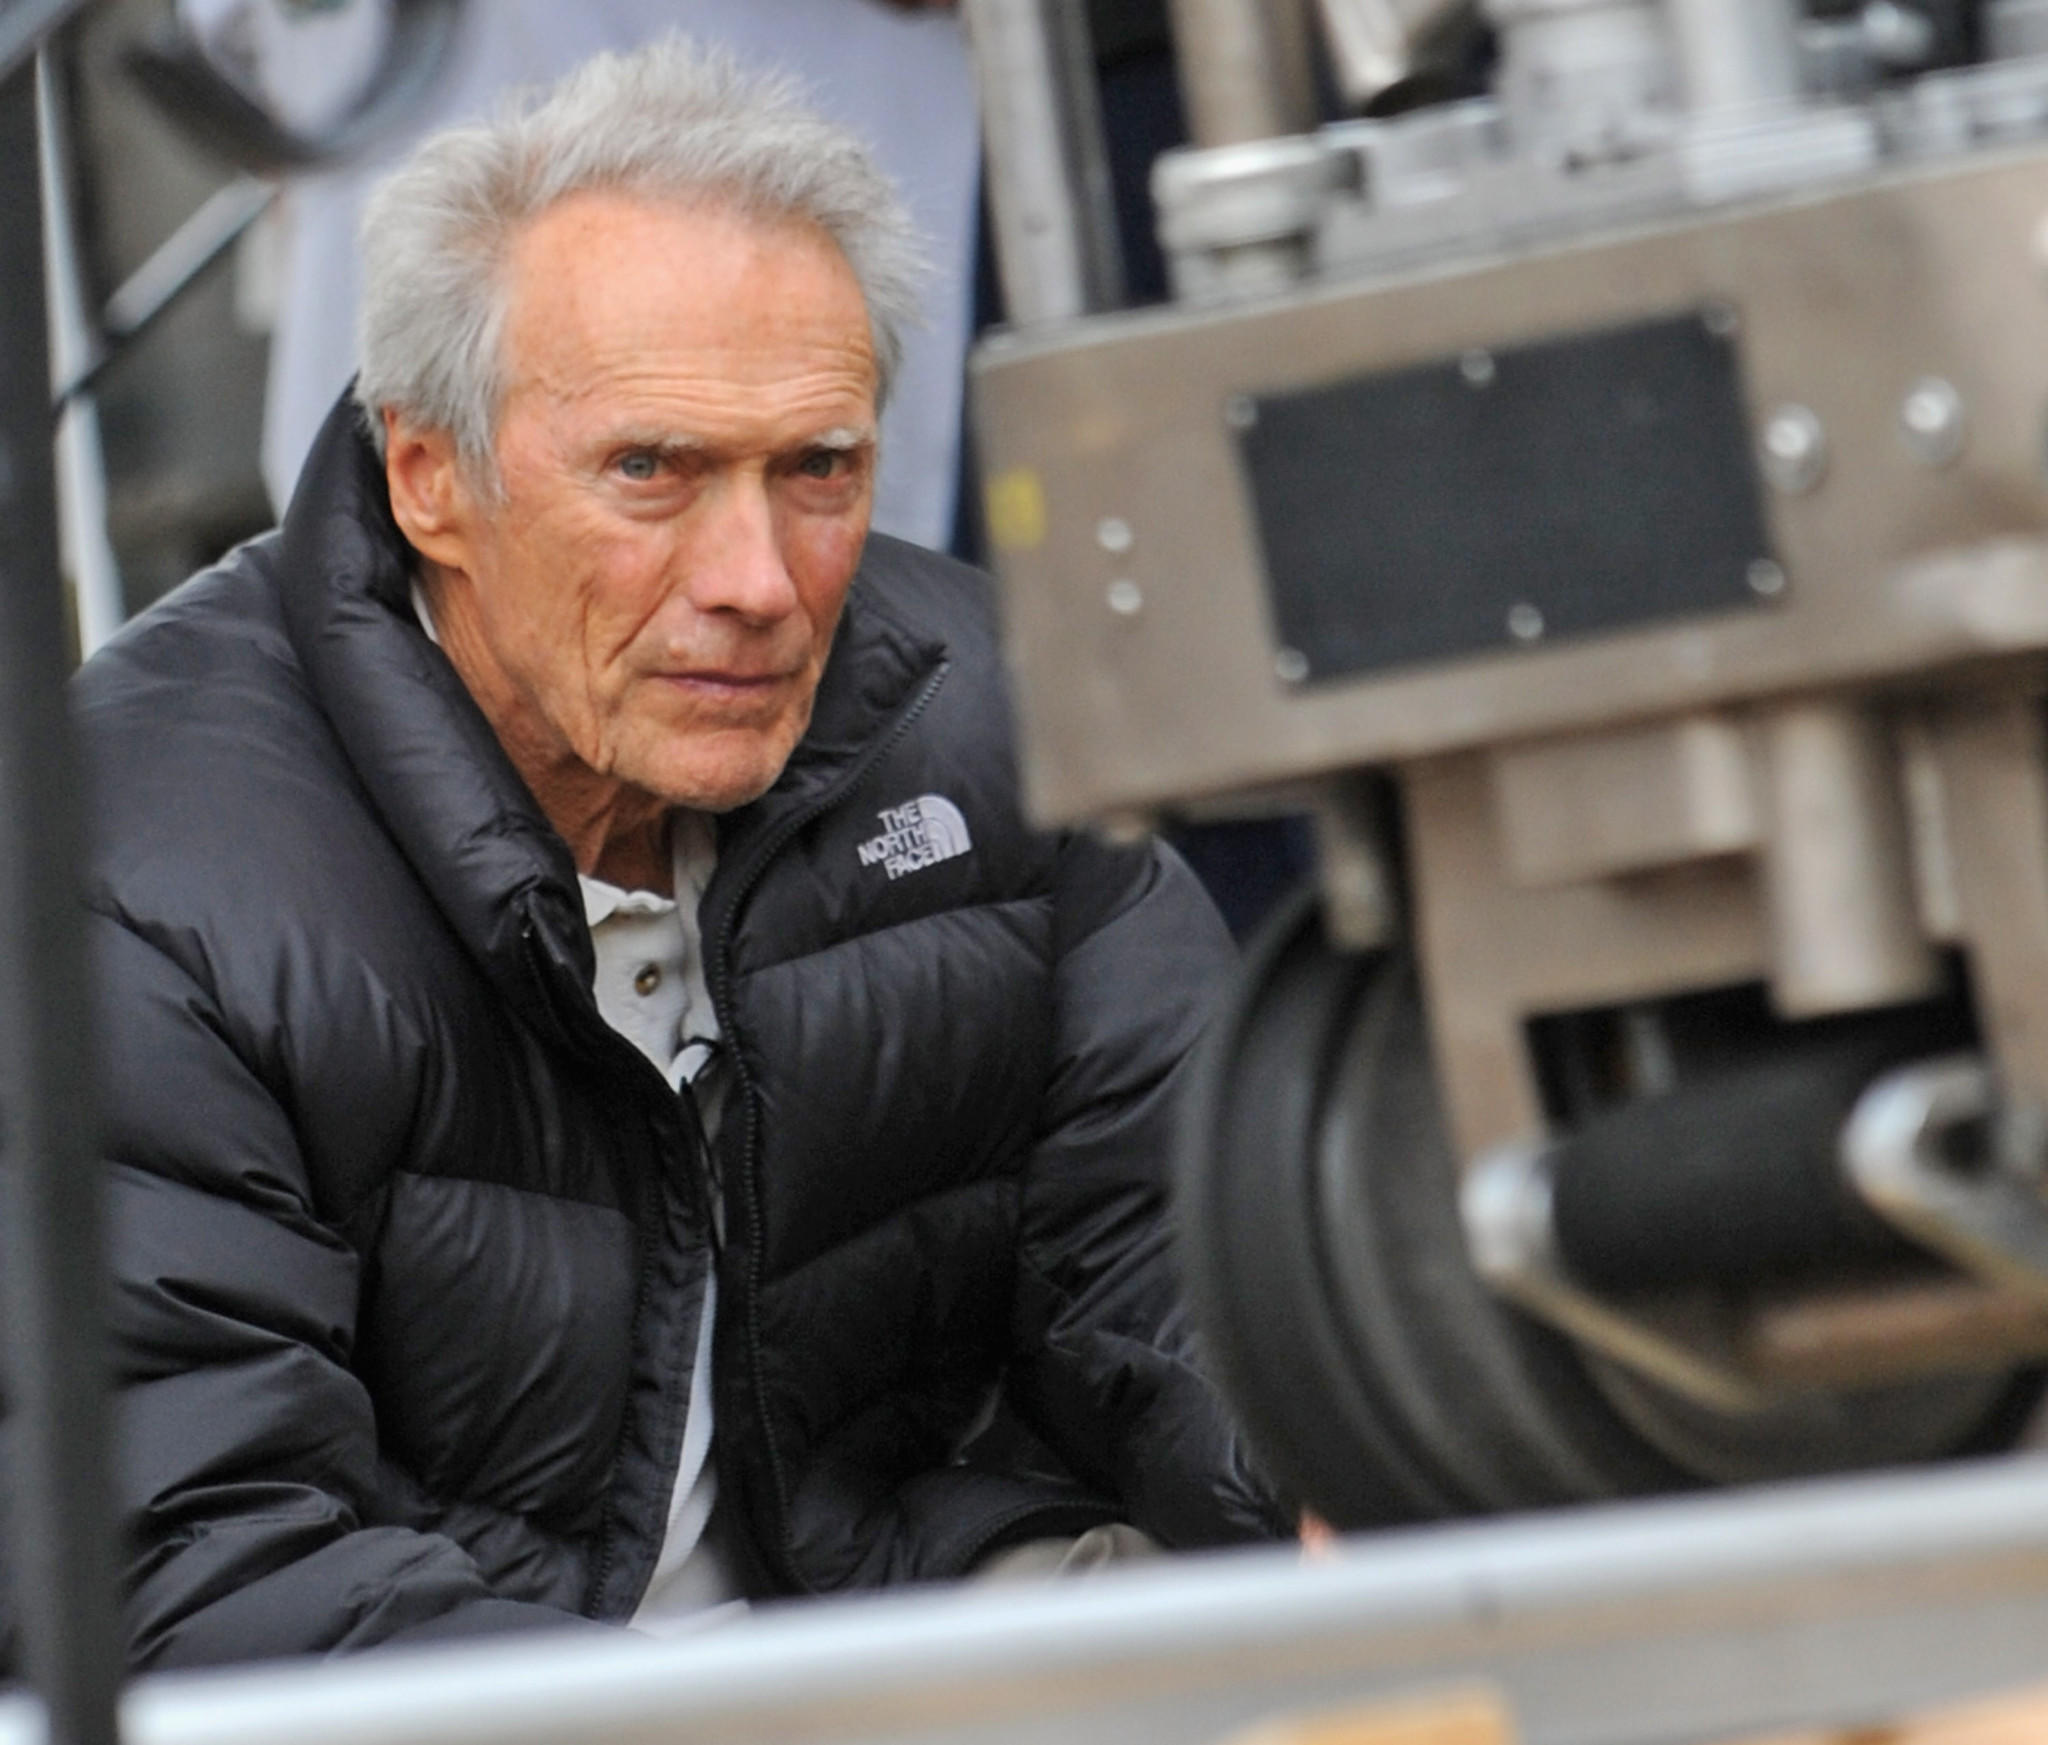 Revisiting clint eastwood 39 s favorite clint eastwood films - David s salon eastwood ...